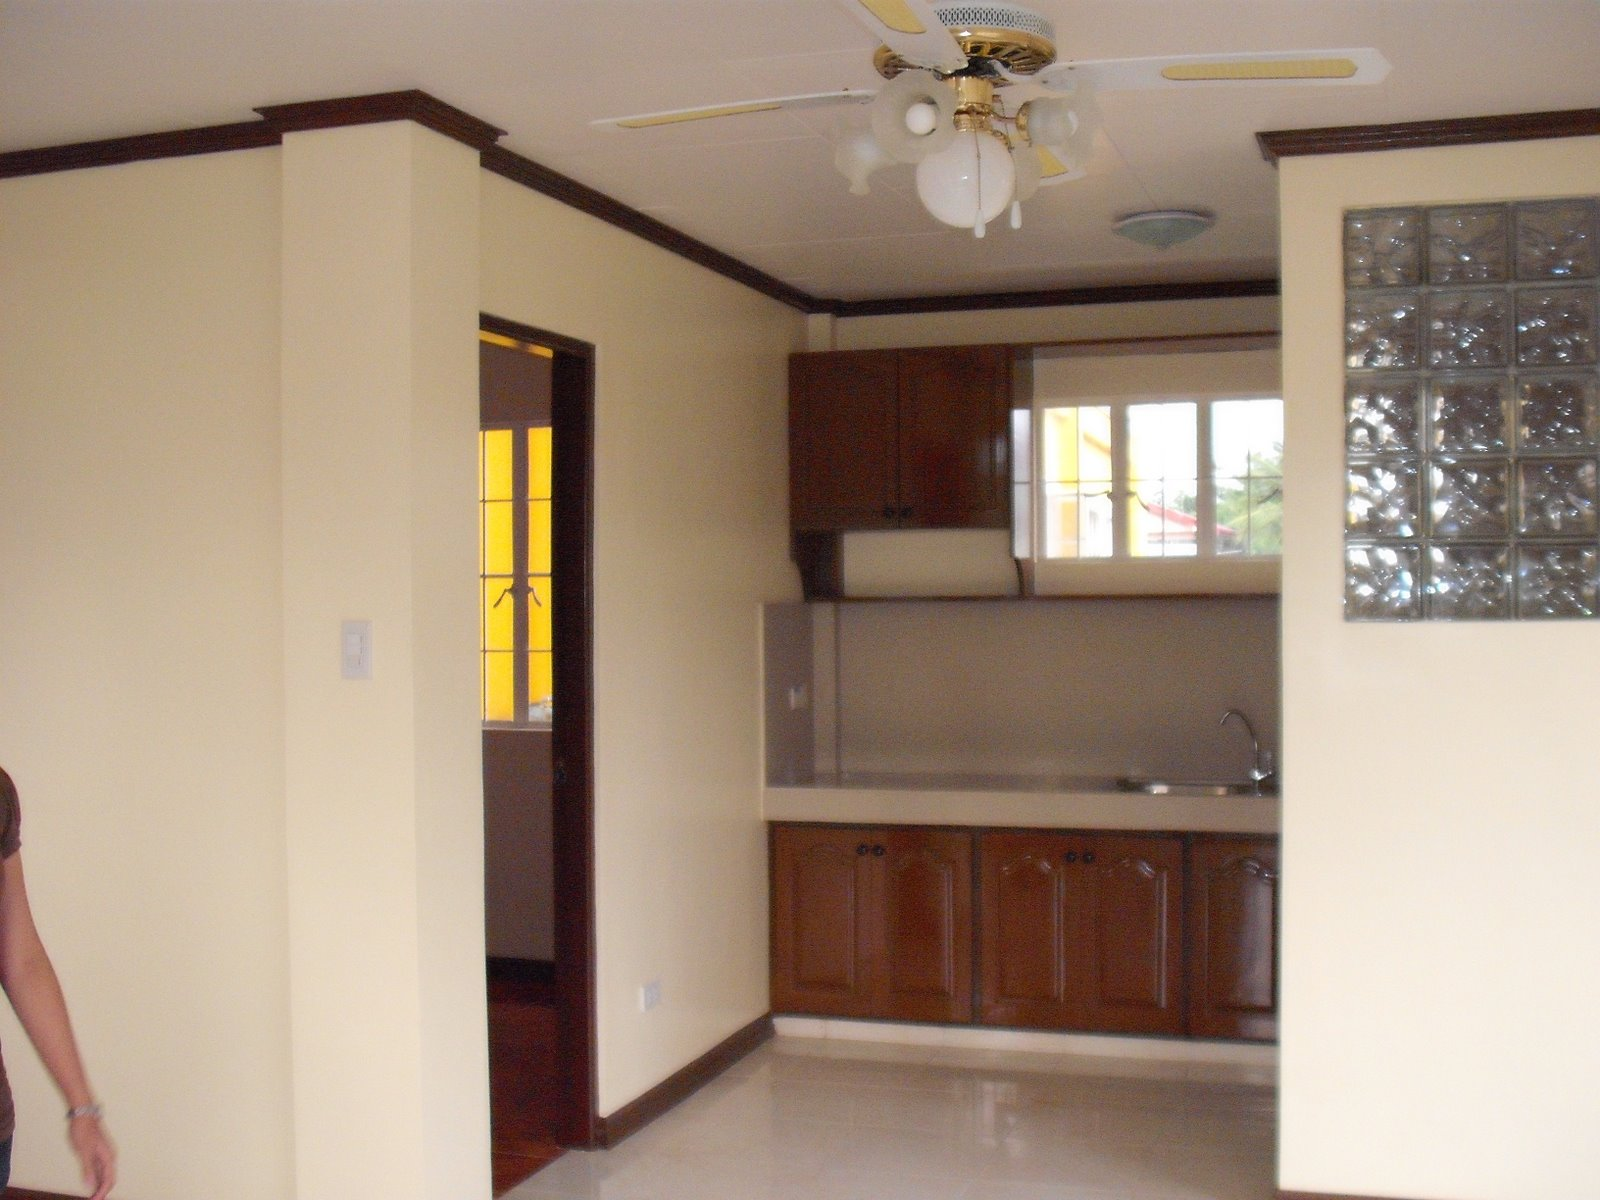 Living Room Designs For Small Houses Philippines small house interior design in the philippines